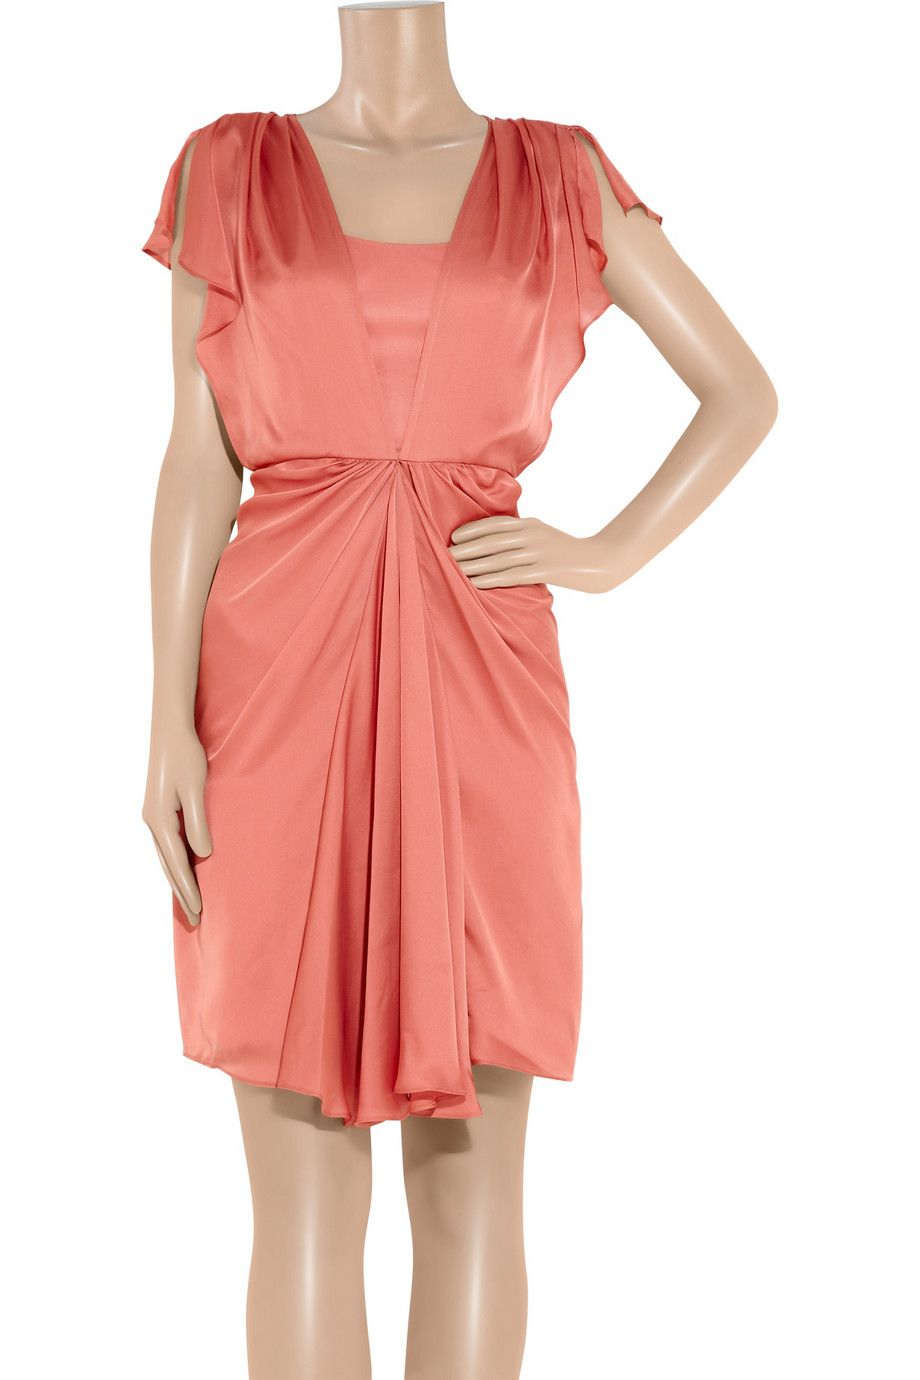 8436bac77ffab Venus draped silk dress by Temperley London | silk dress | Dresses ...